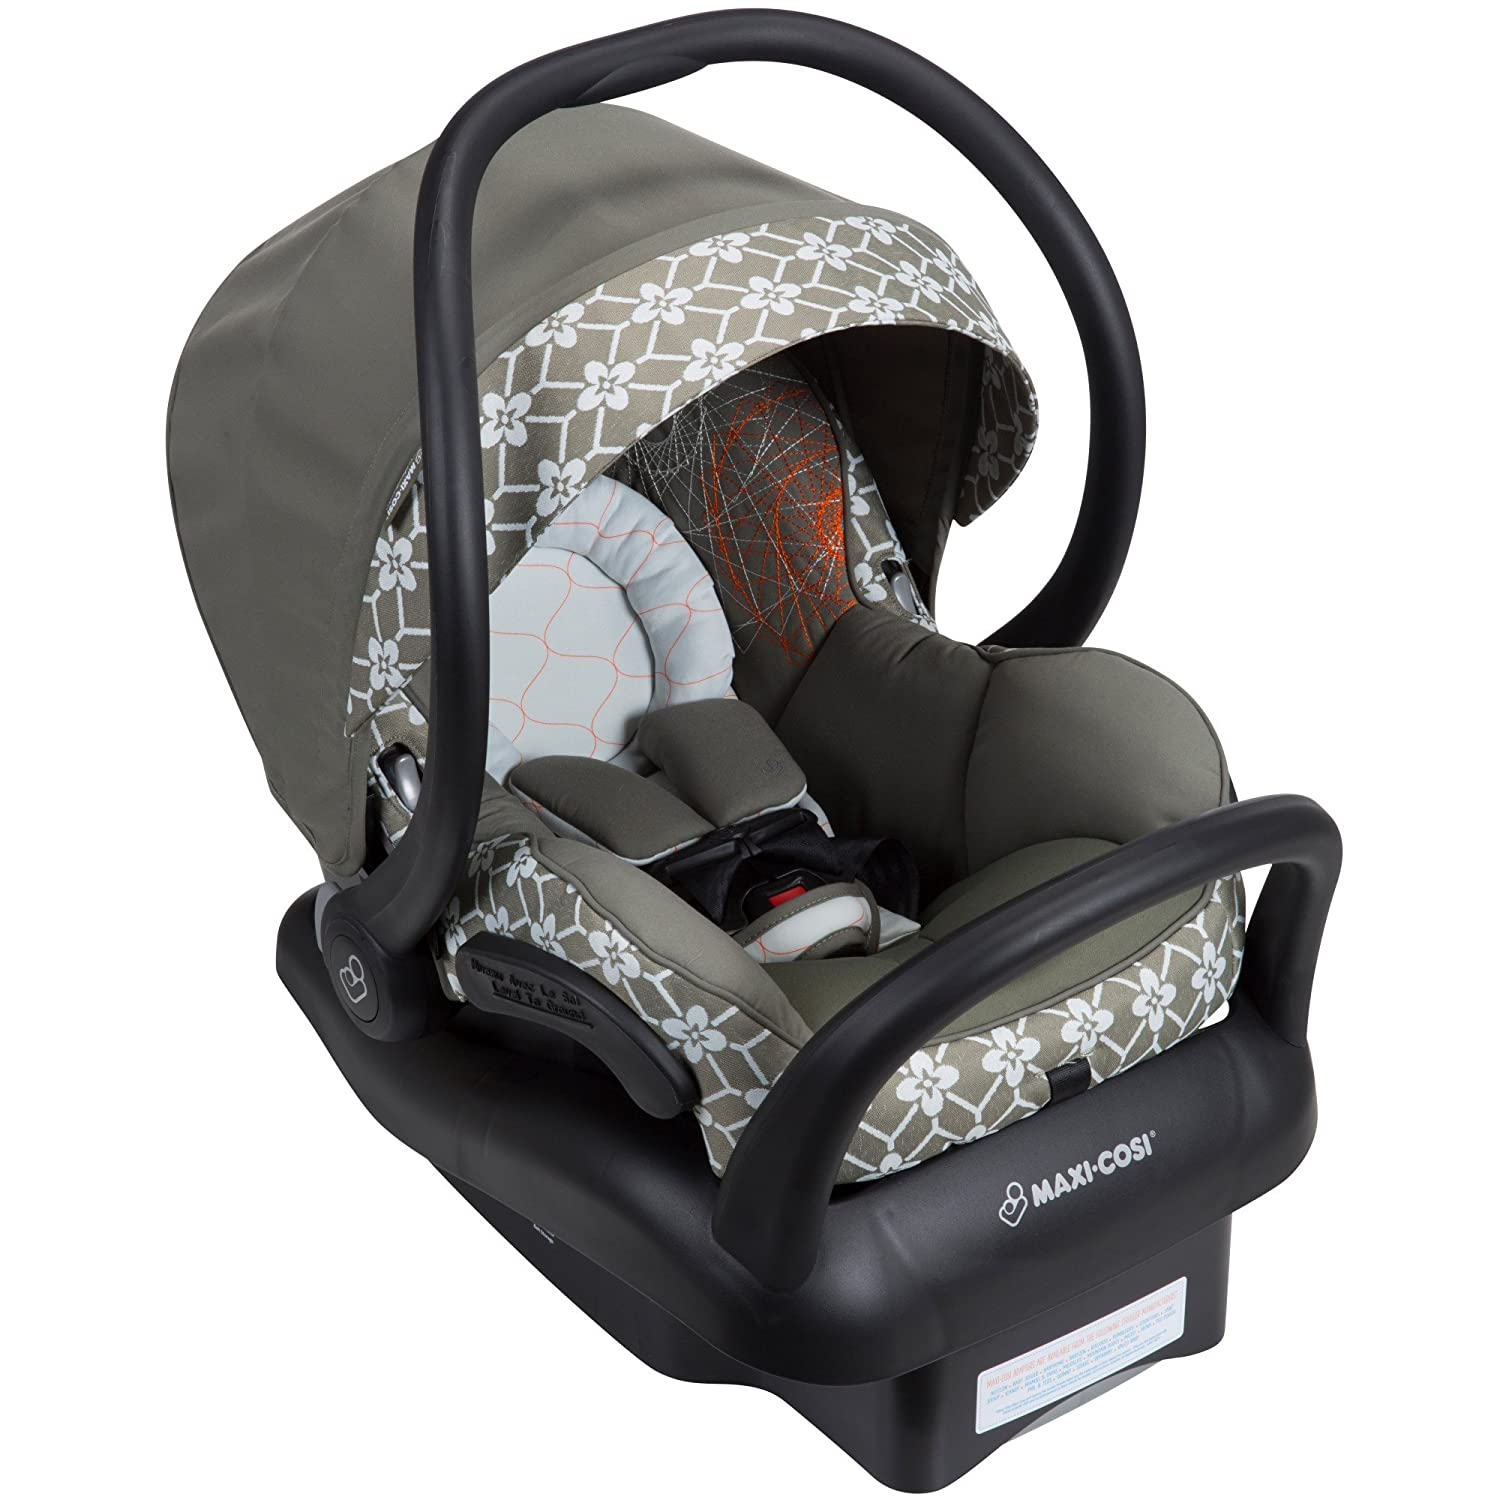 Maxi-Cosi Mico Max 30 Infant Car Seat, Graphic Flower